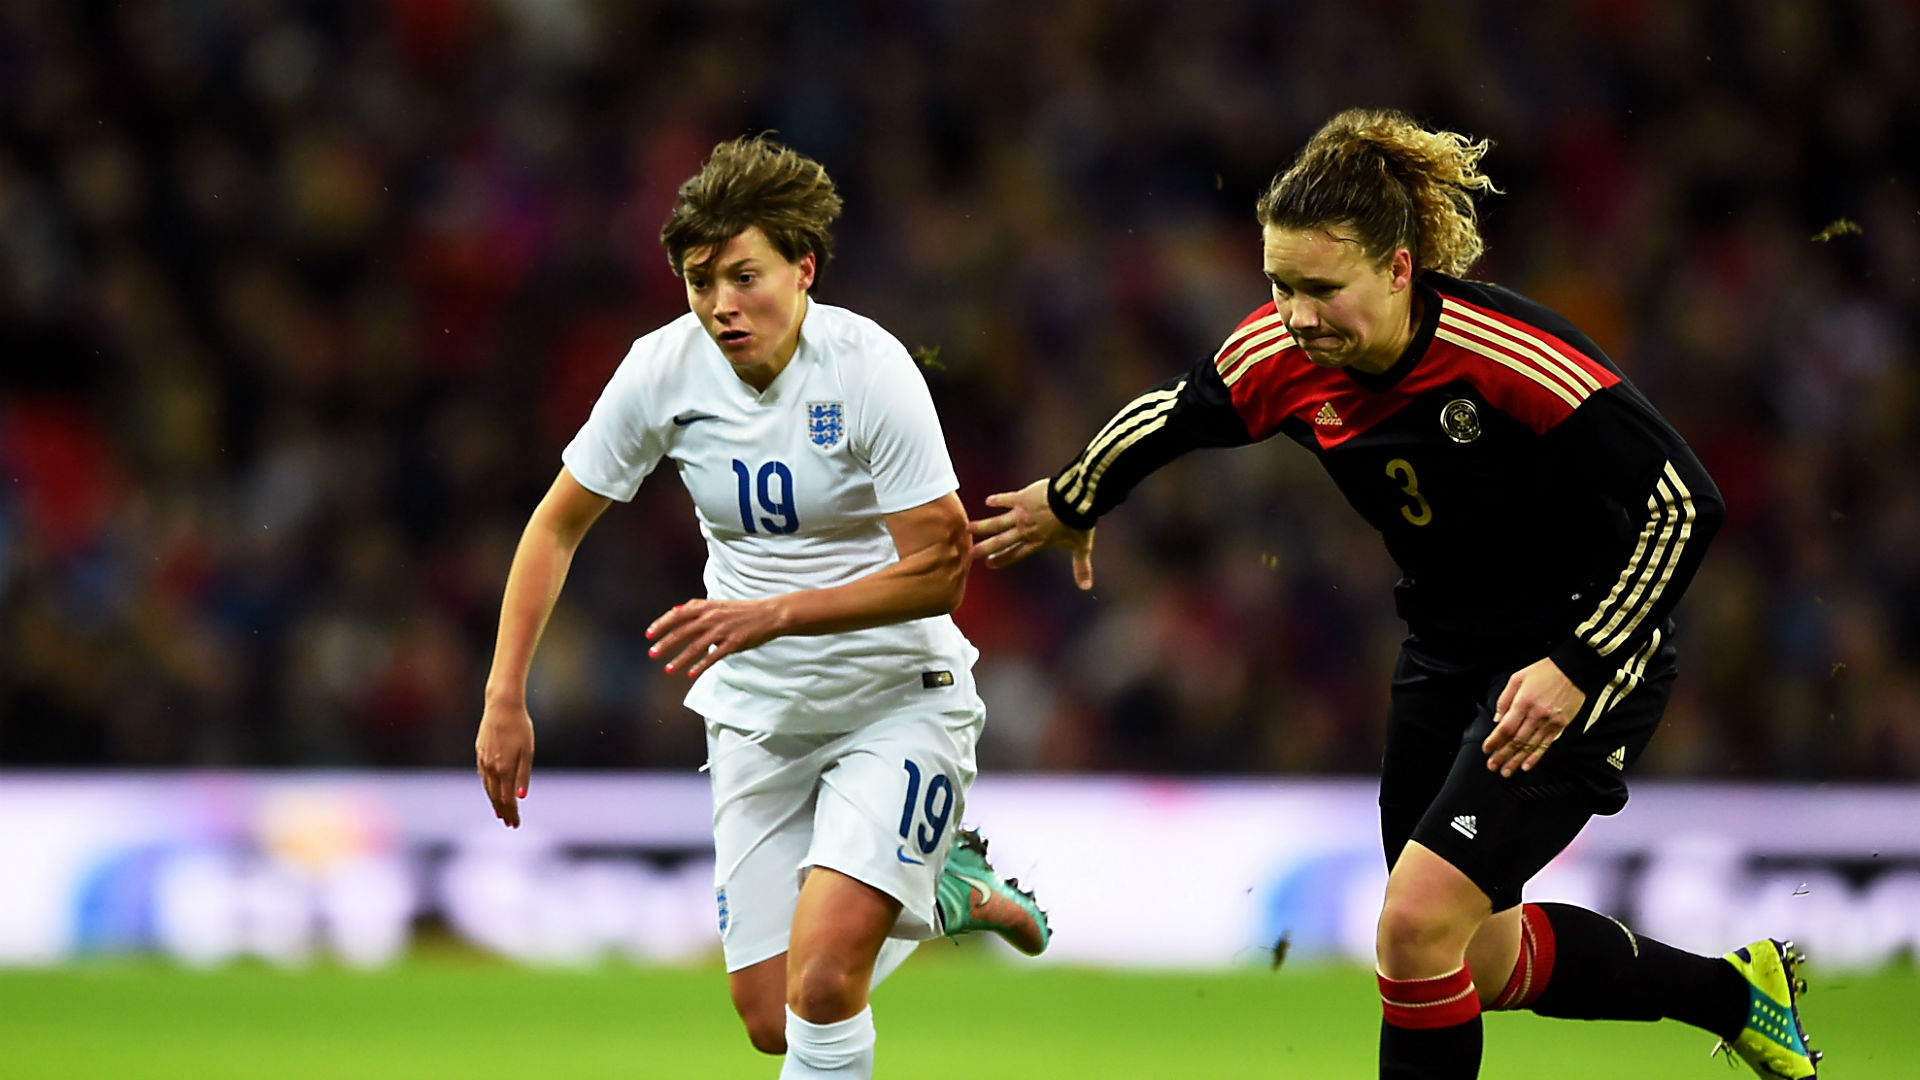 Women's World Cup, Germany vs. England: Time, TV channel, online streaming for Third Place Game